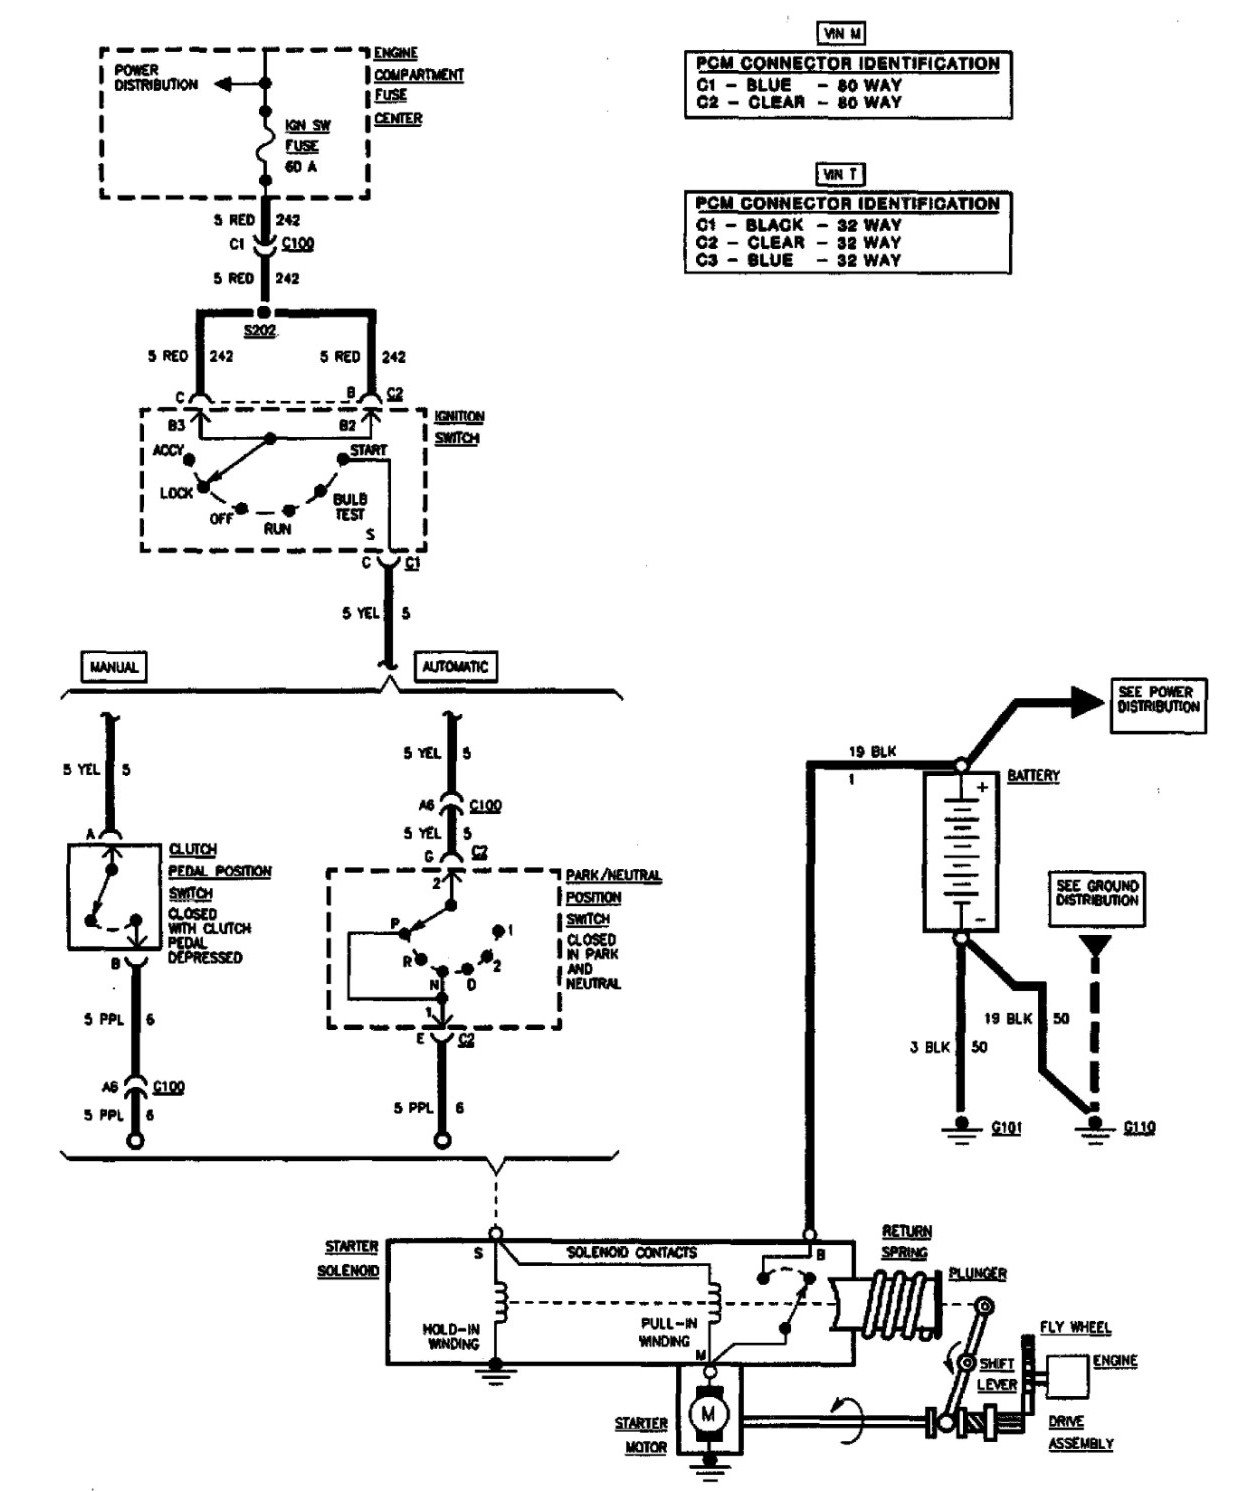 I Have A 96 Skylark That Will No Crankall Dash Ligts Come On With Here Is Wire Diagram Let Me Know If You Questions Thanks Digram Graphic